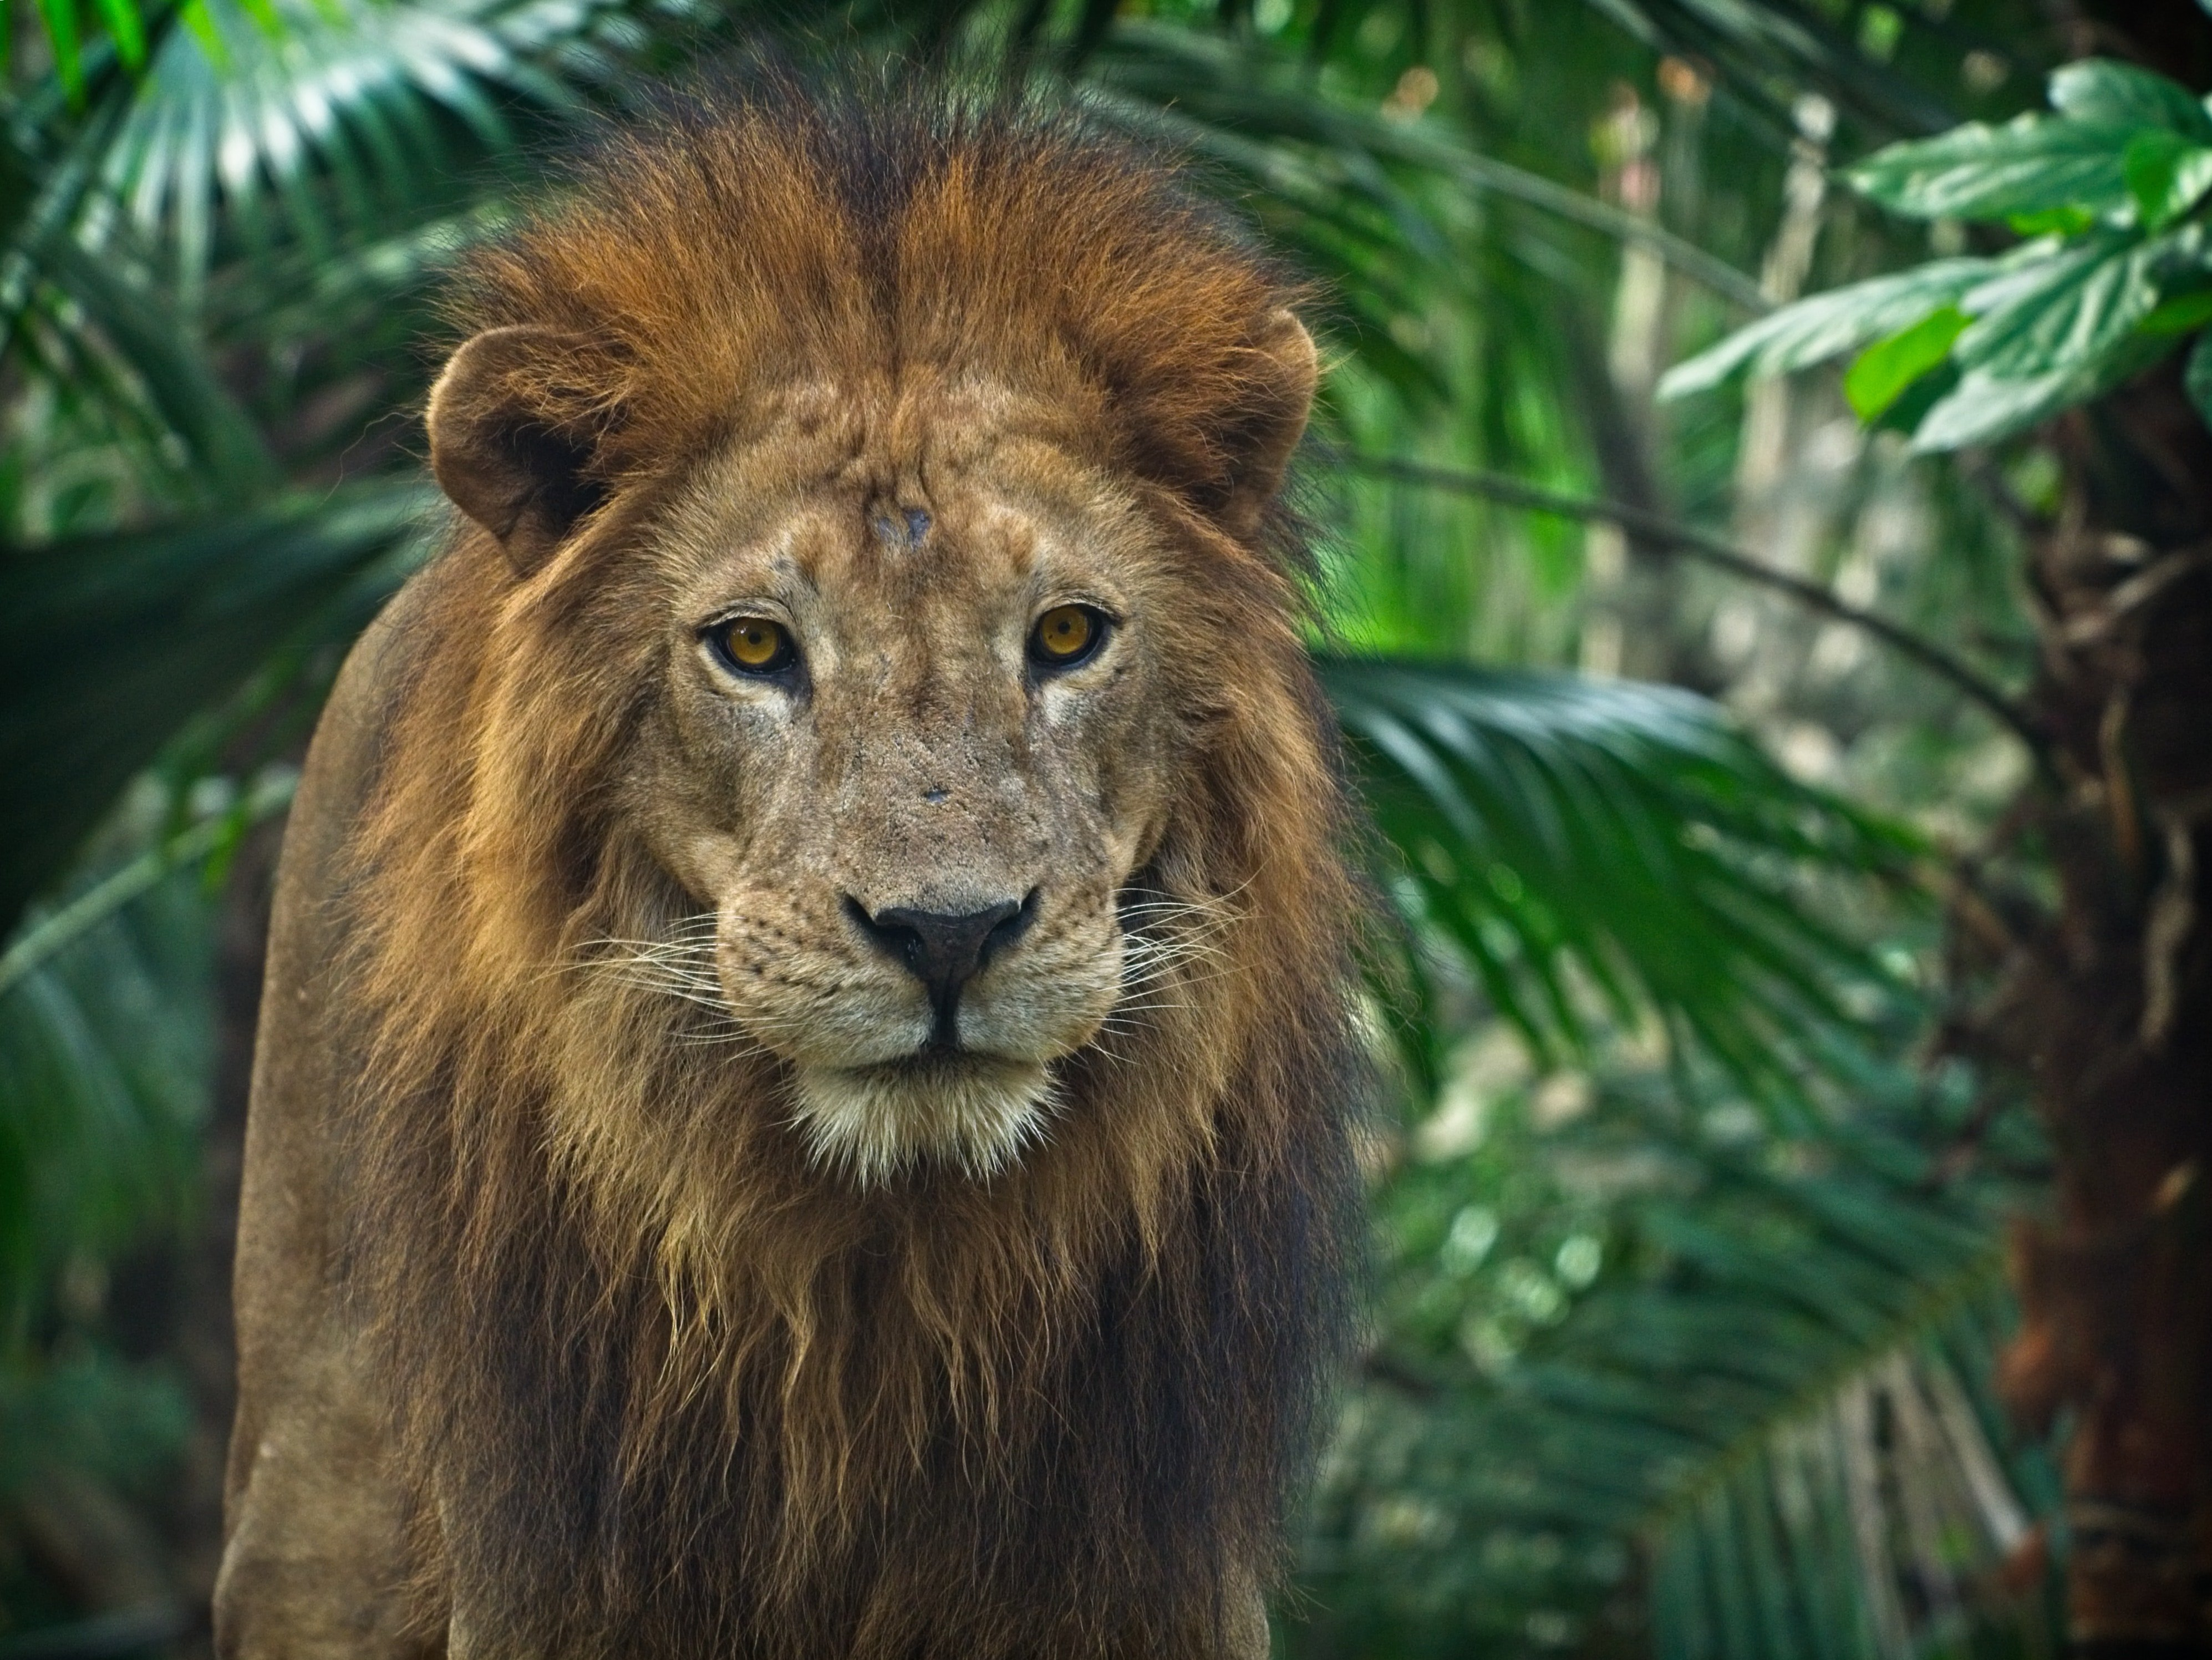 Photo of a lion in the jungle | Photo: Pexels